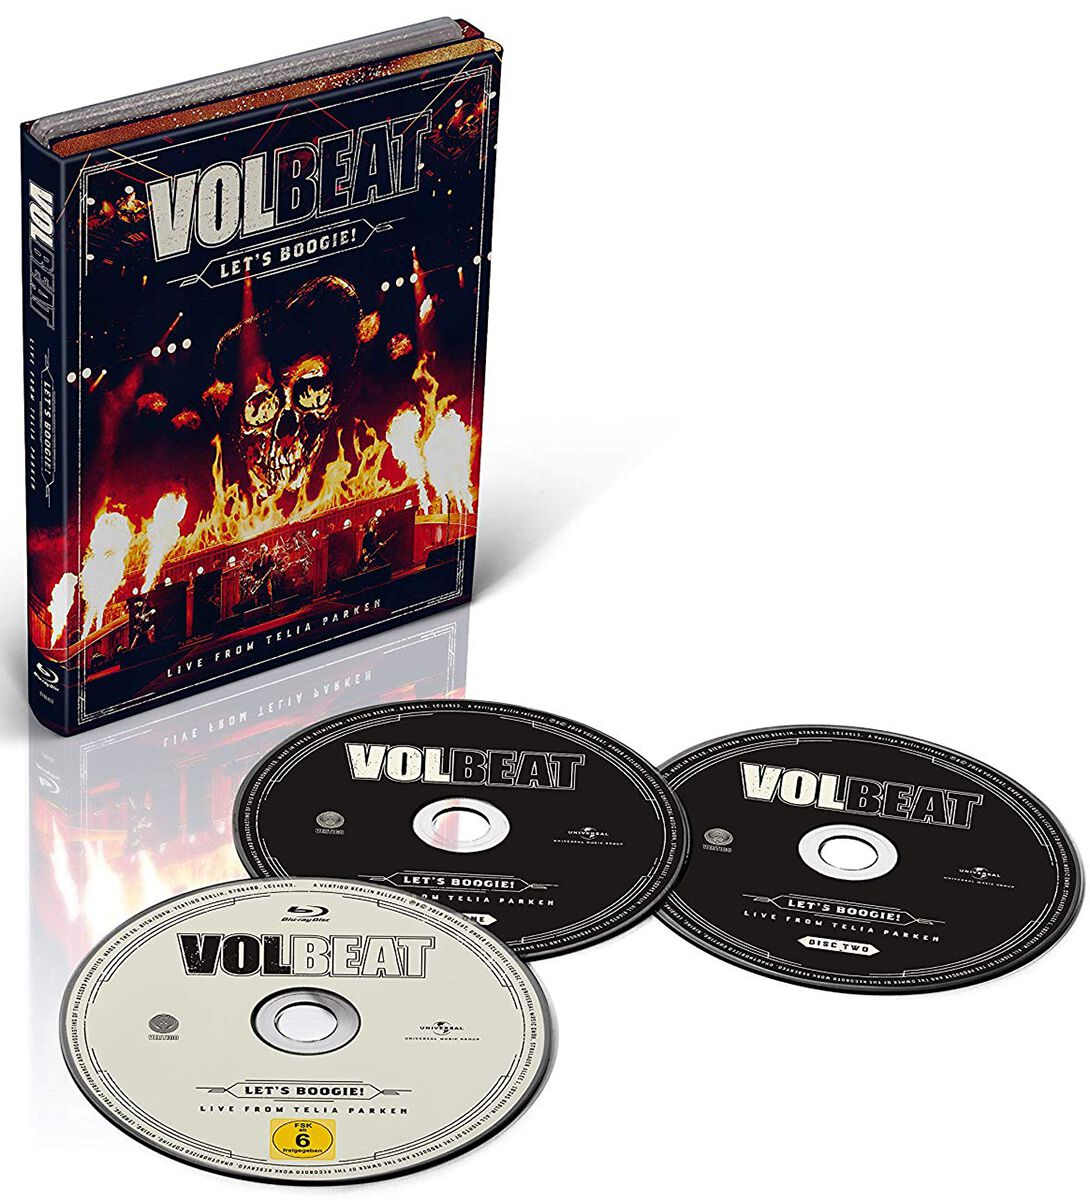 Image of   Volbeat Let's Boogie (Live from Telia Parken) 2-CD & Blu-ray standard